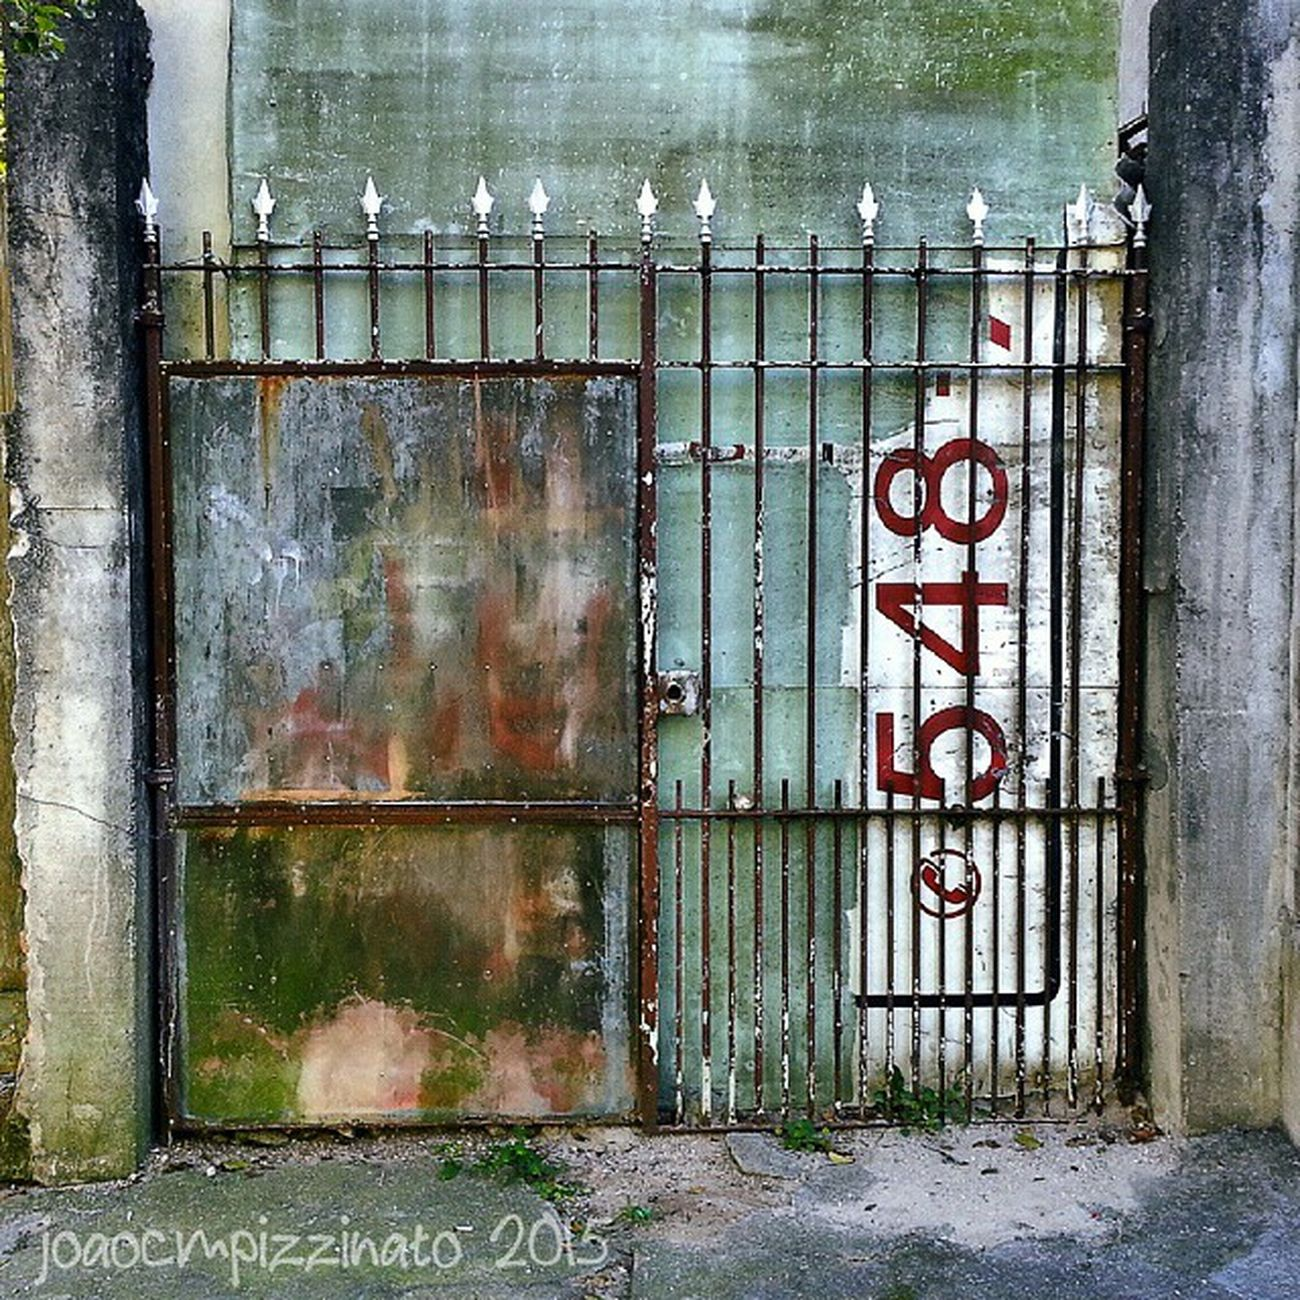 Gate Grimegate Rsa_preciousjunk Flaming_rust trailblazers_urbex 80sixd sundoors door_filth doorknobitry ic_doors portasejanelas portaseportoes kings_doorsandco rsa_doorsandwindows icu_doorsandwindows streetphotography urban streetphoto_brasil tv_urbex colors city zonasul saopaulo brasil photograph